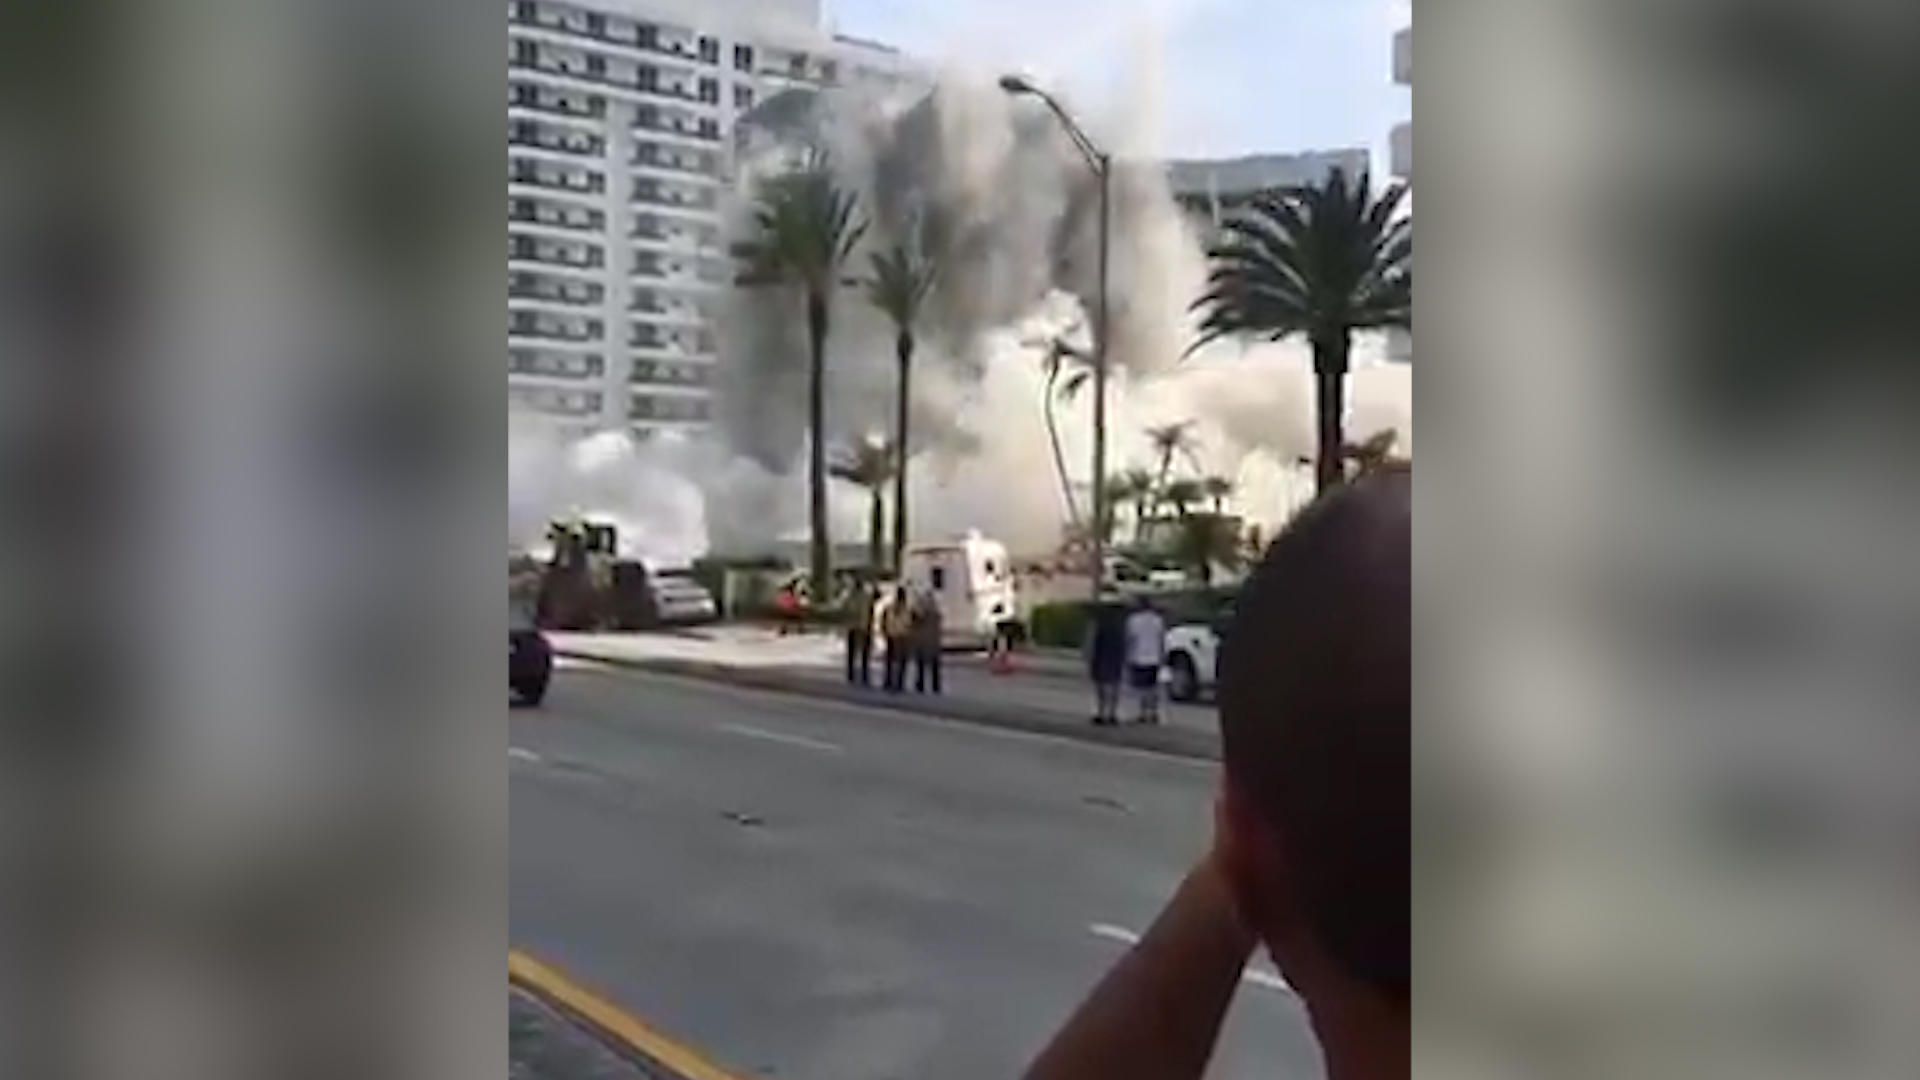 Miami Beach building collapse was an accident, contractor says